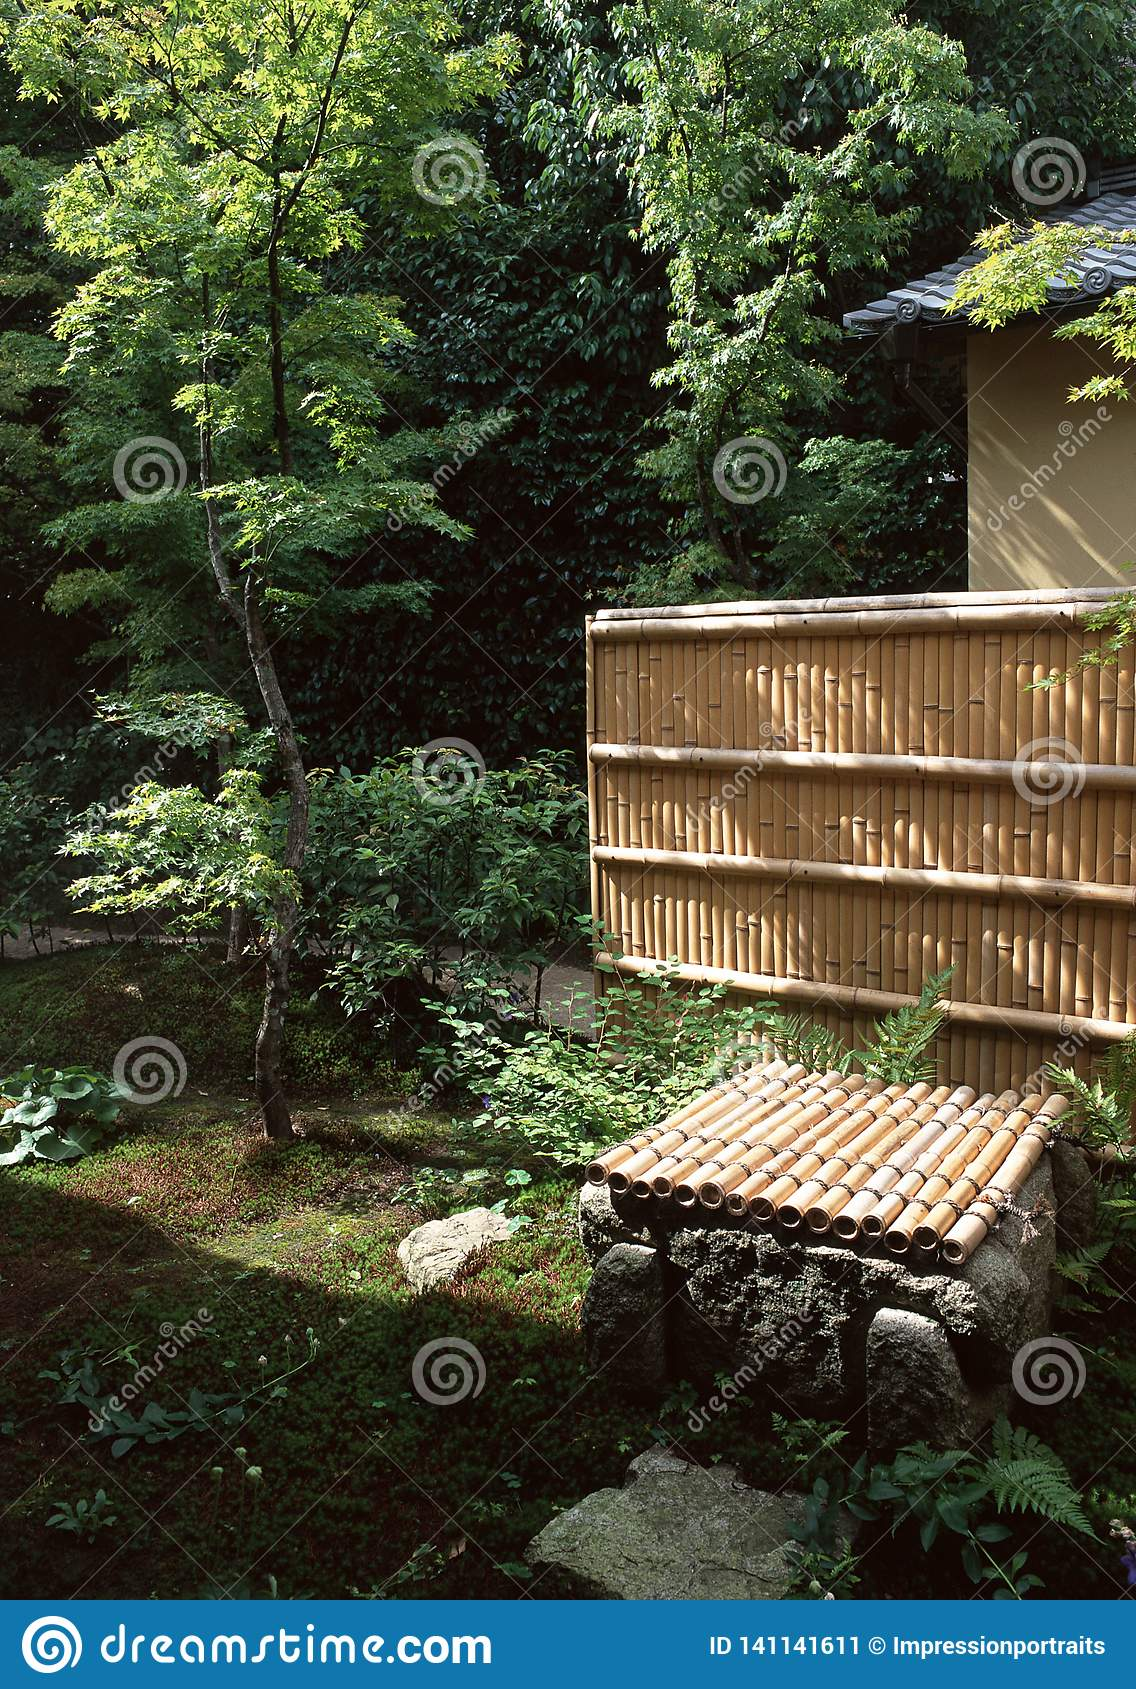 Japanese bamboo wall in outdoor garden with trees and plants